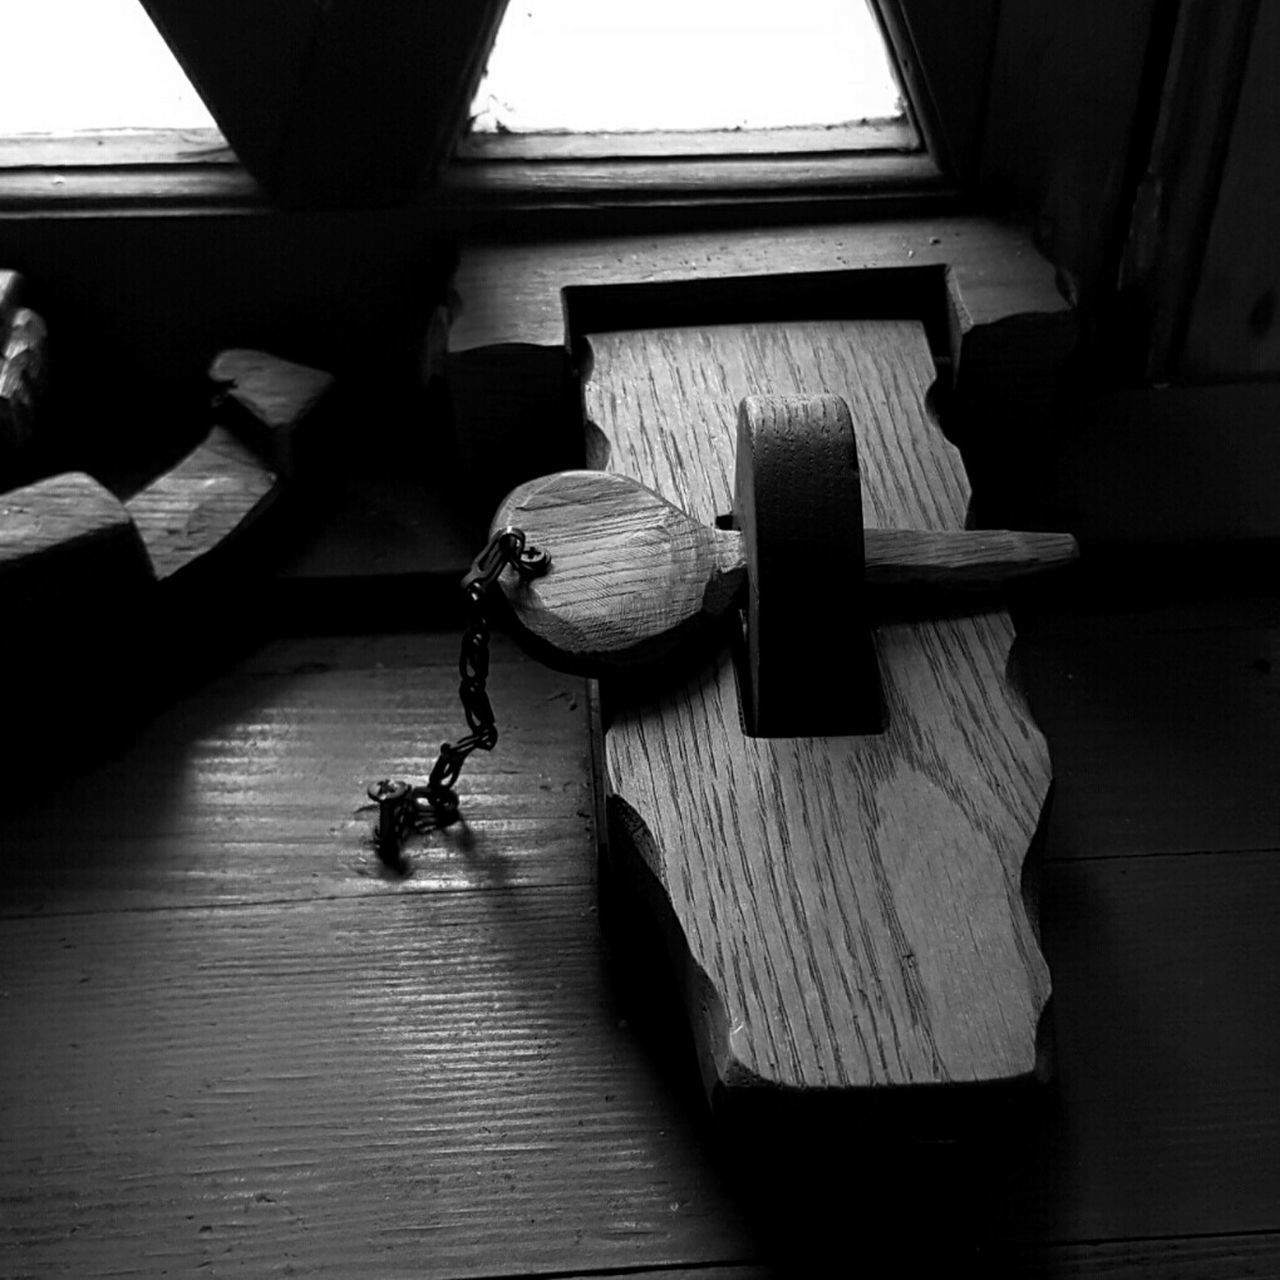 High Angle View Of Wooden Latch On Table